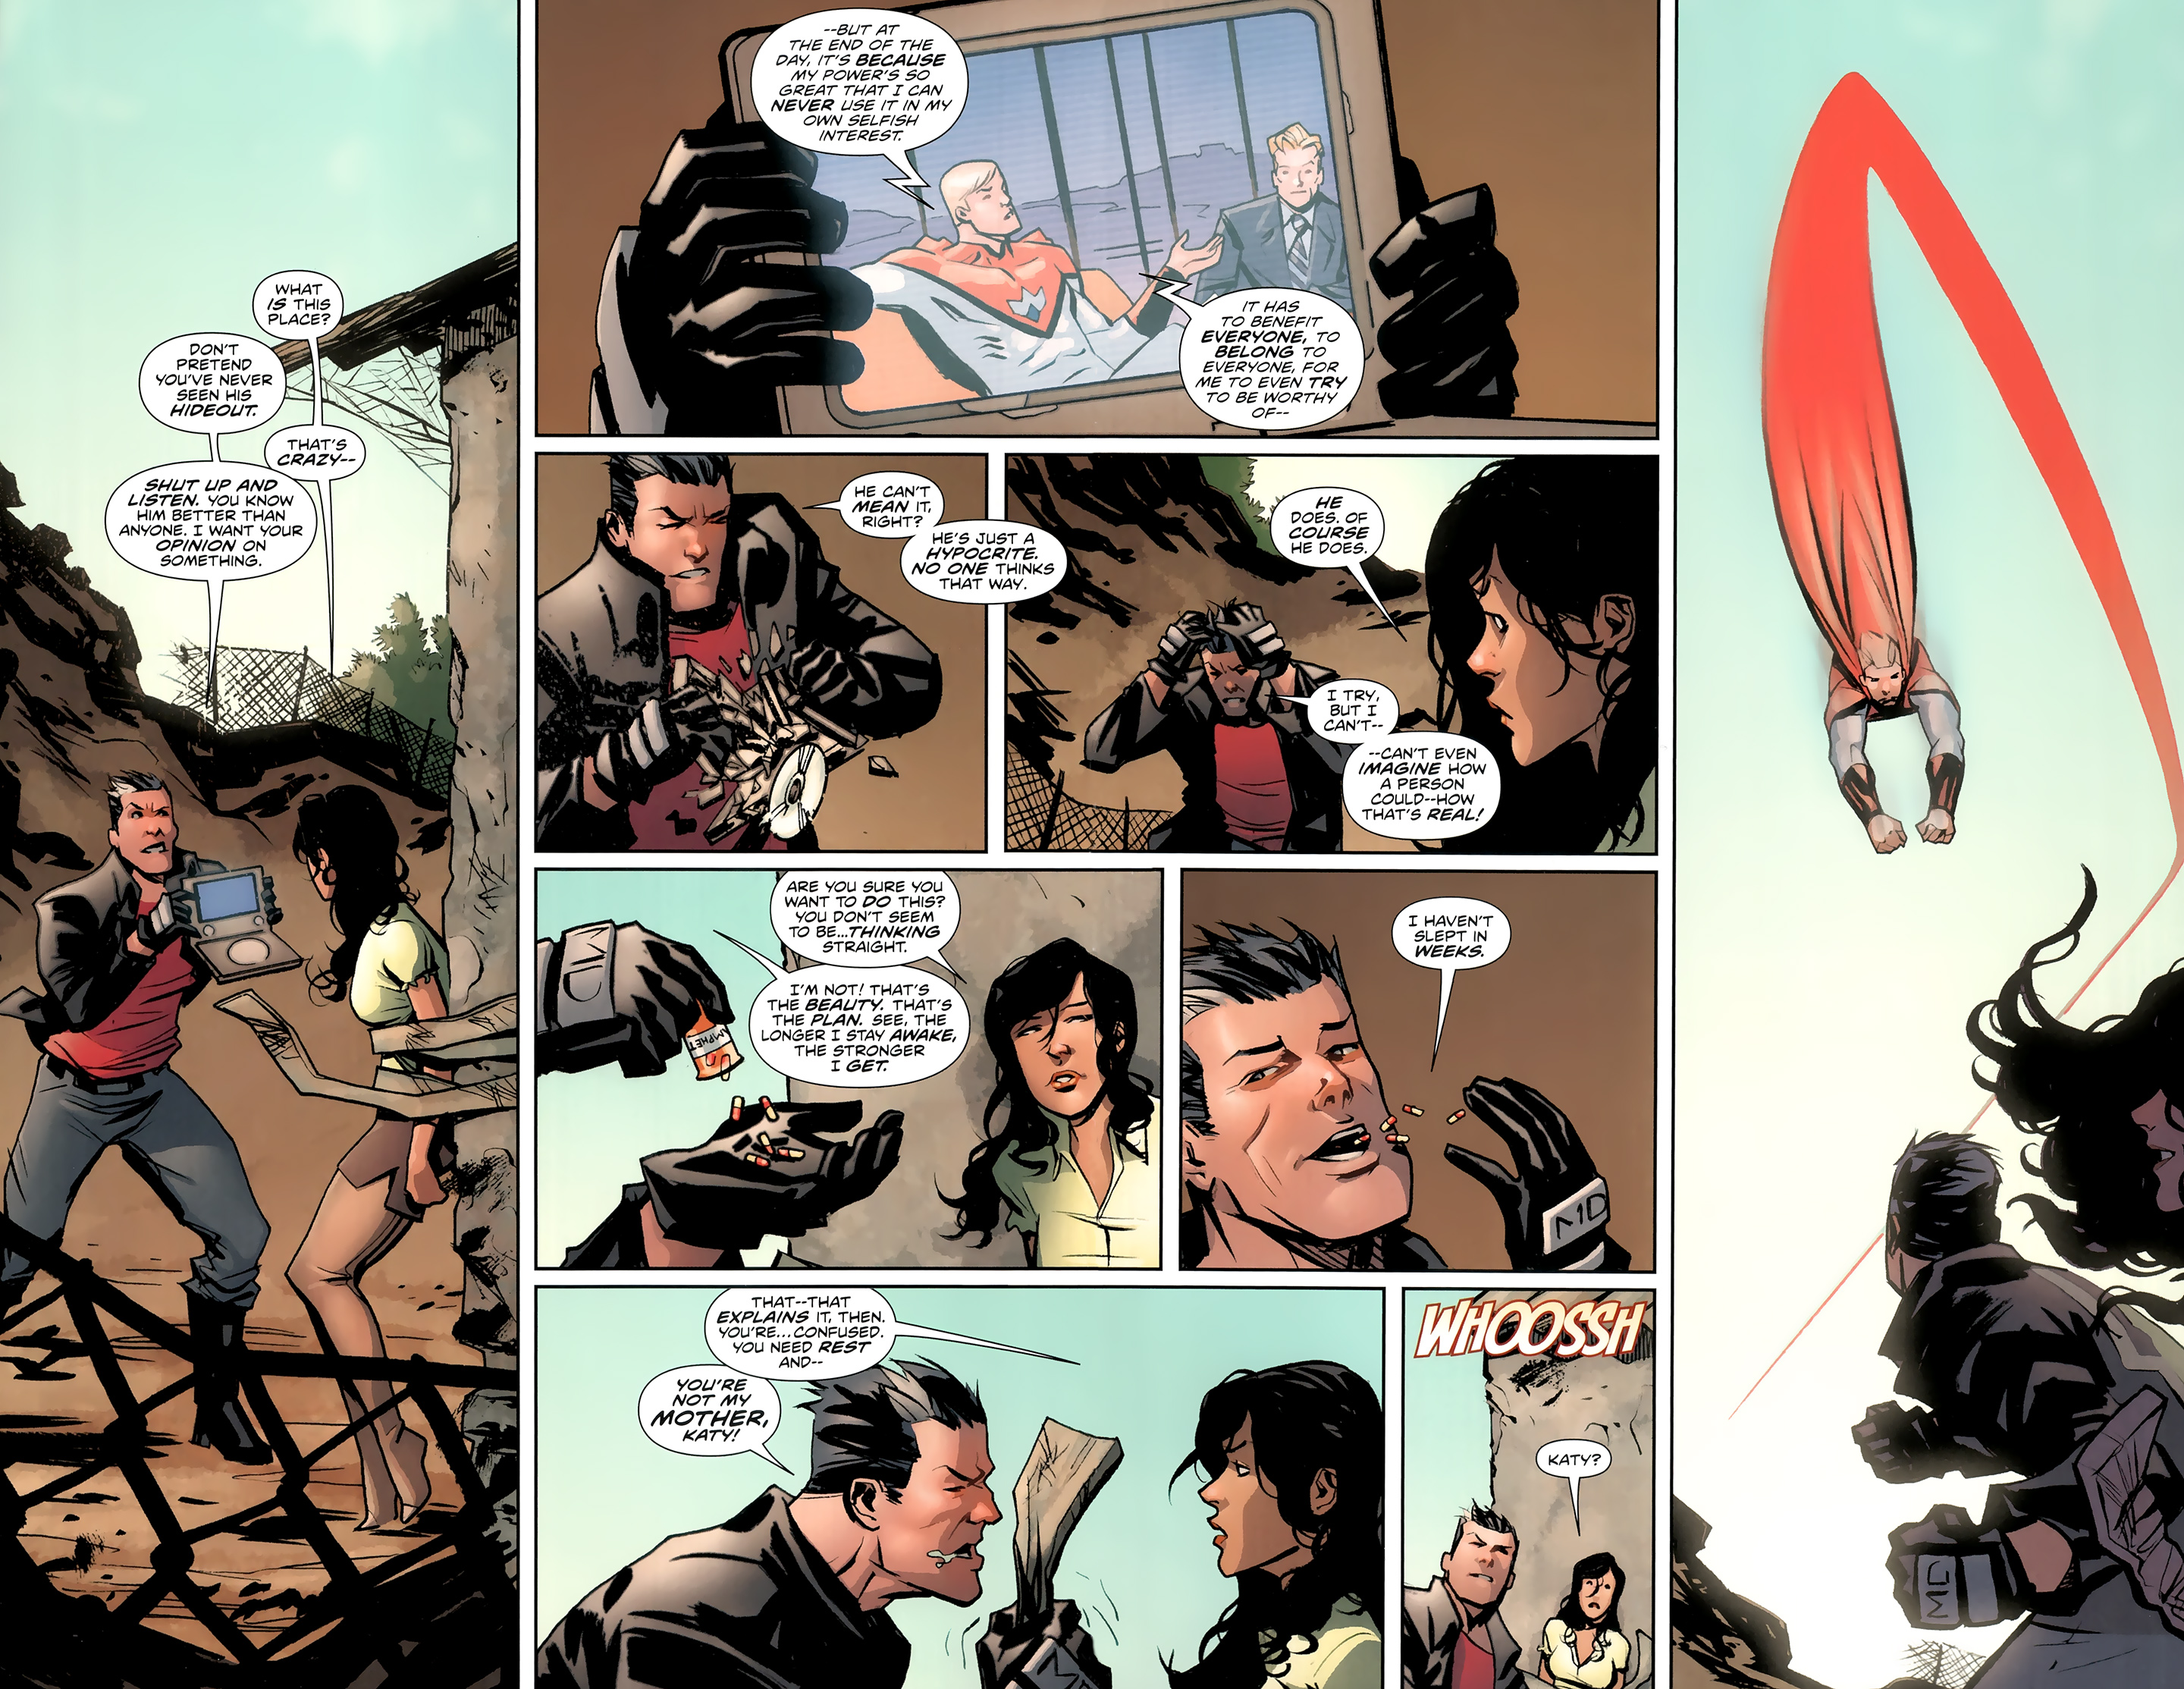 Read online Incorruptible comic -  Issue #26 - 16